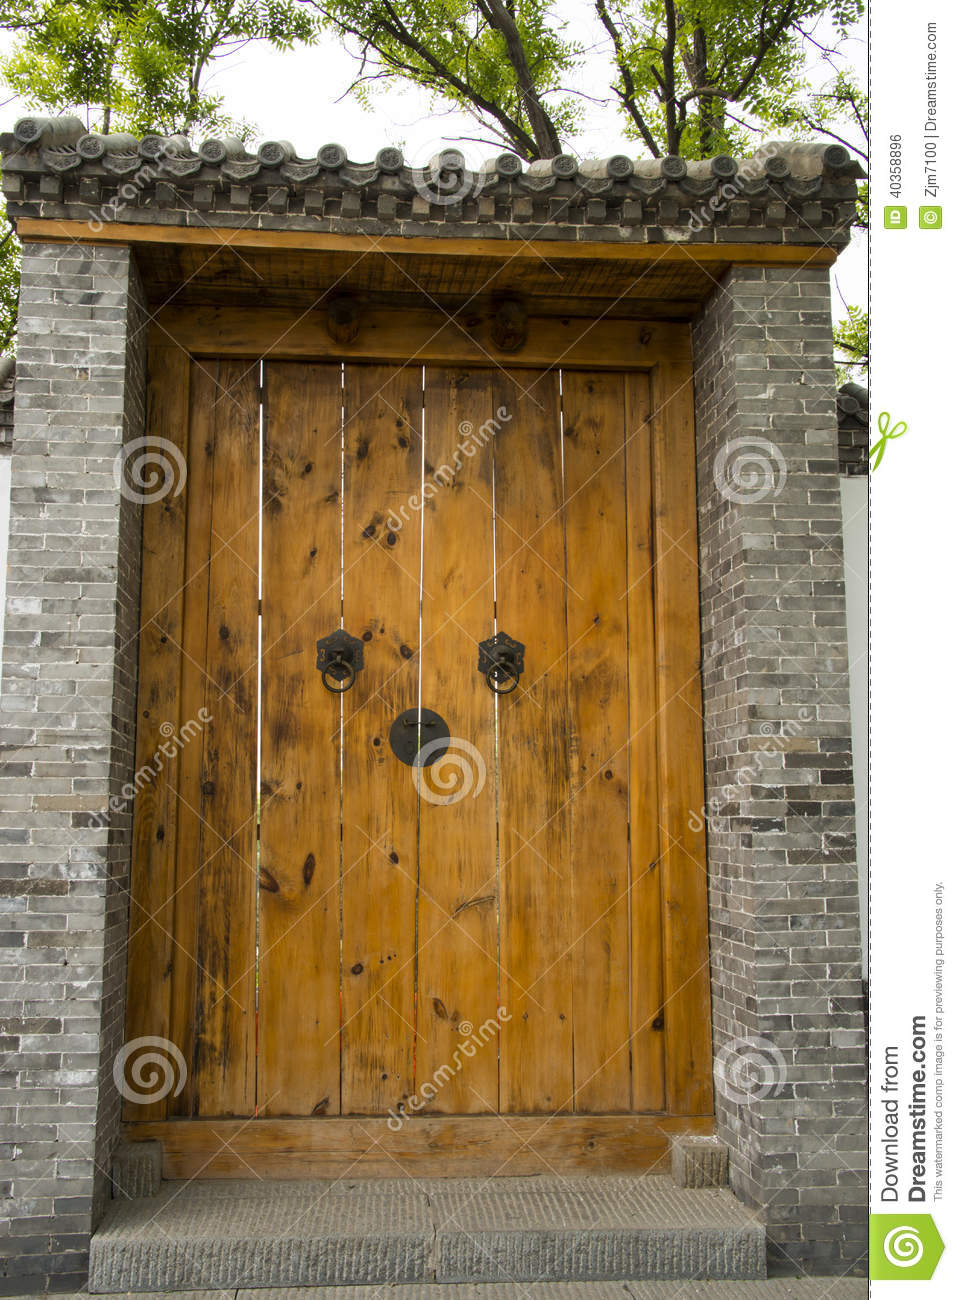 Asian China antique buildings, large wooden doors, - Asian China Antique Buildings, Large Wooden Doors, Stock Photo